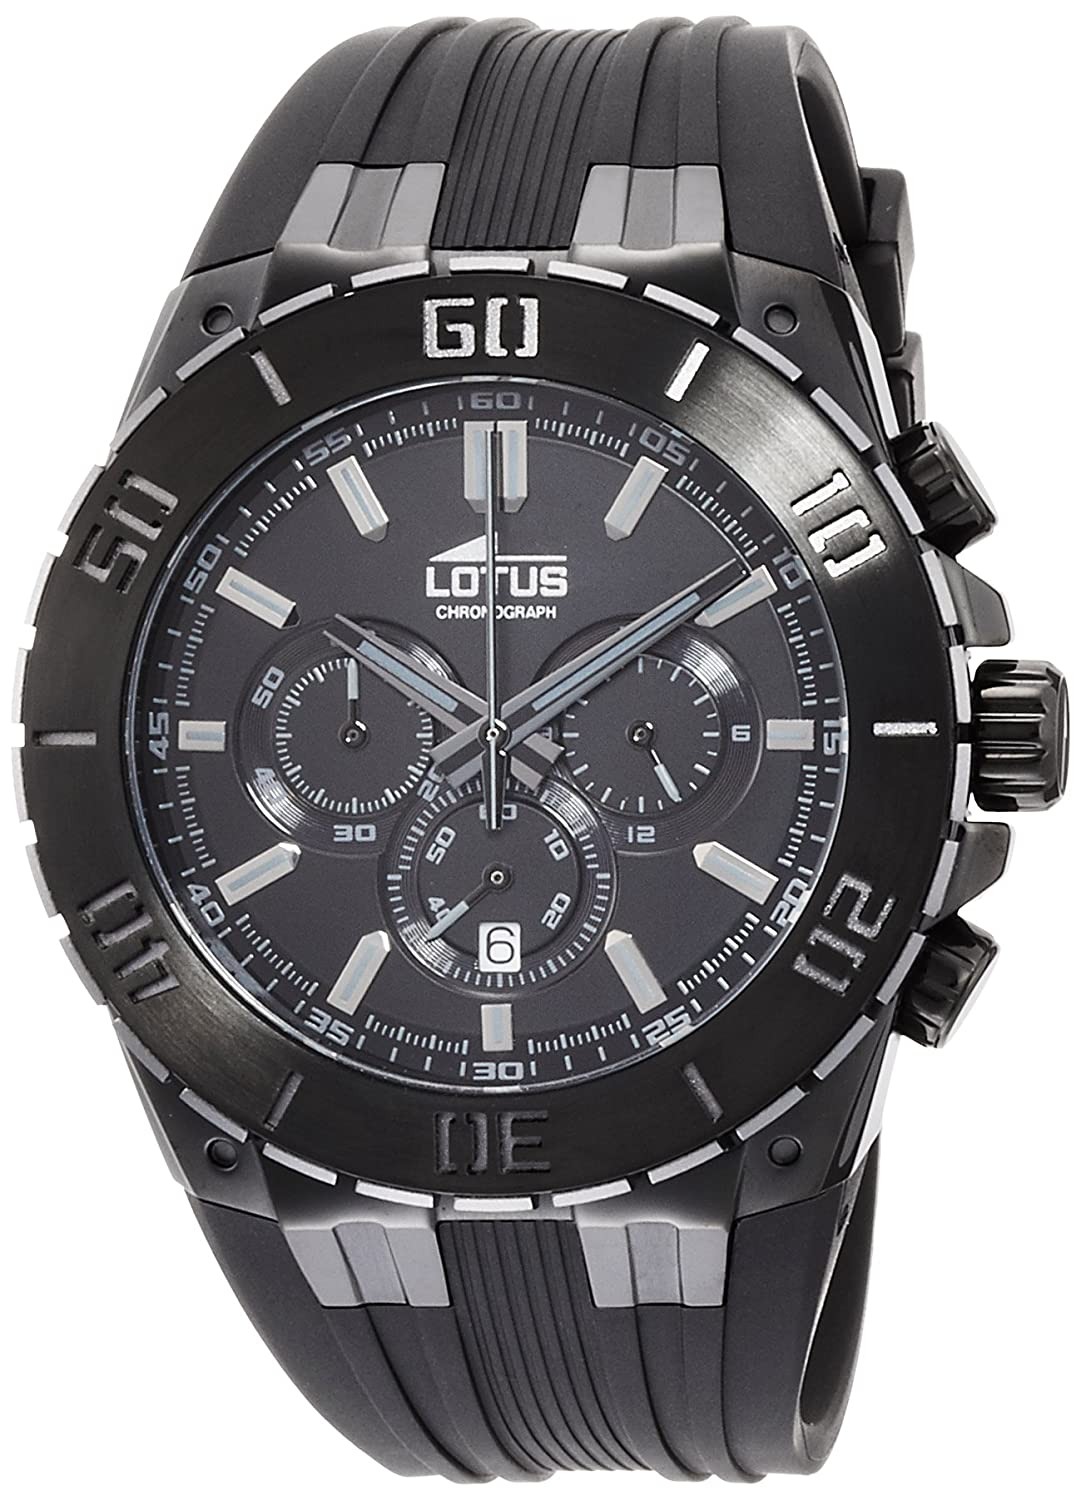 Amazon.com: Mens Watch LOTUS 15803/1 - Chronograph - Rubber Band: Watches